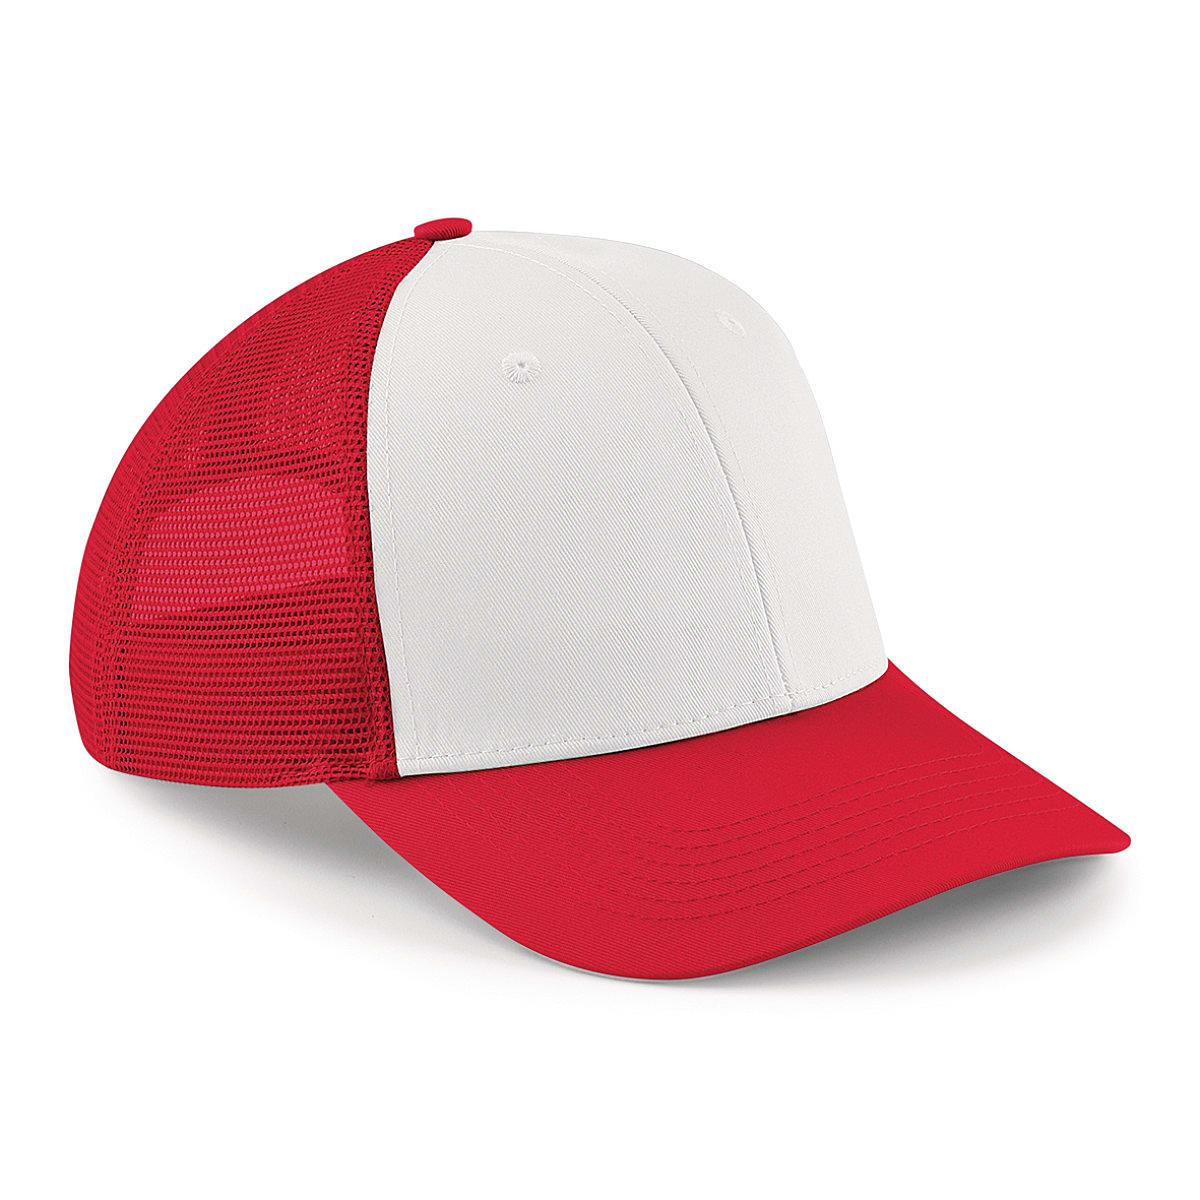 Beechfield 6 Panel Snapback Trucker Cap in Classic Red / White (Product Code: B647)